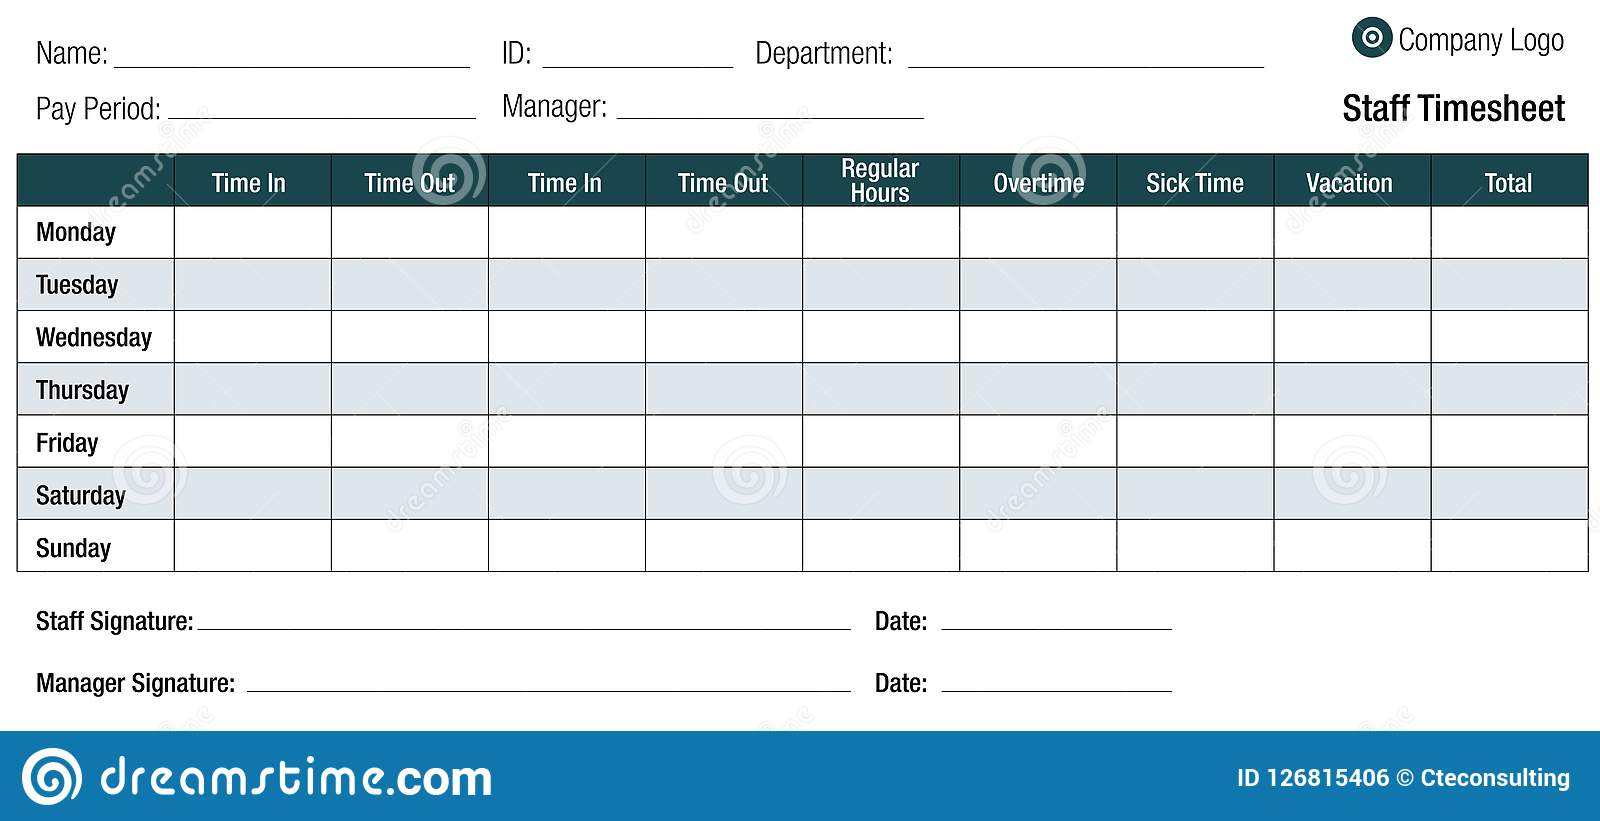 Time Sheet Template Table For Employees